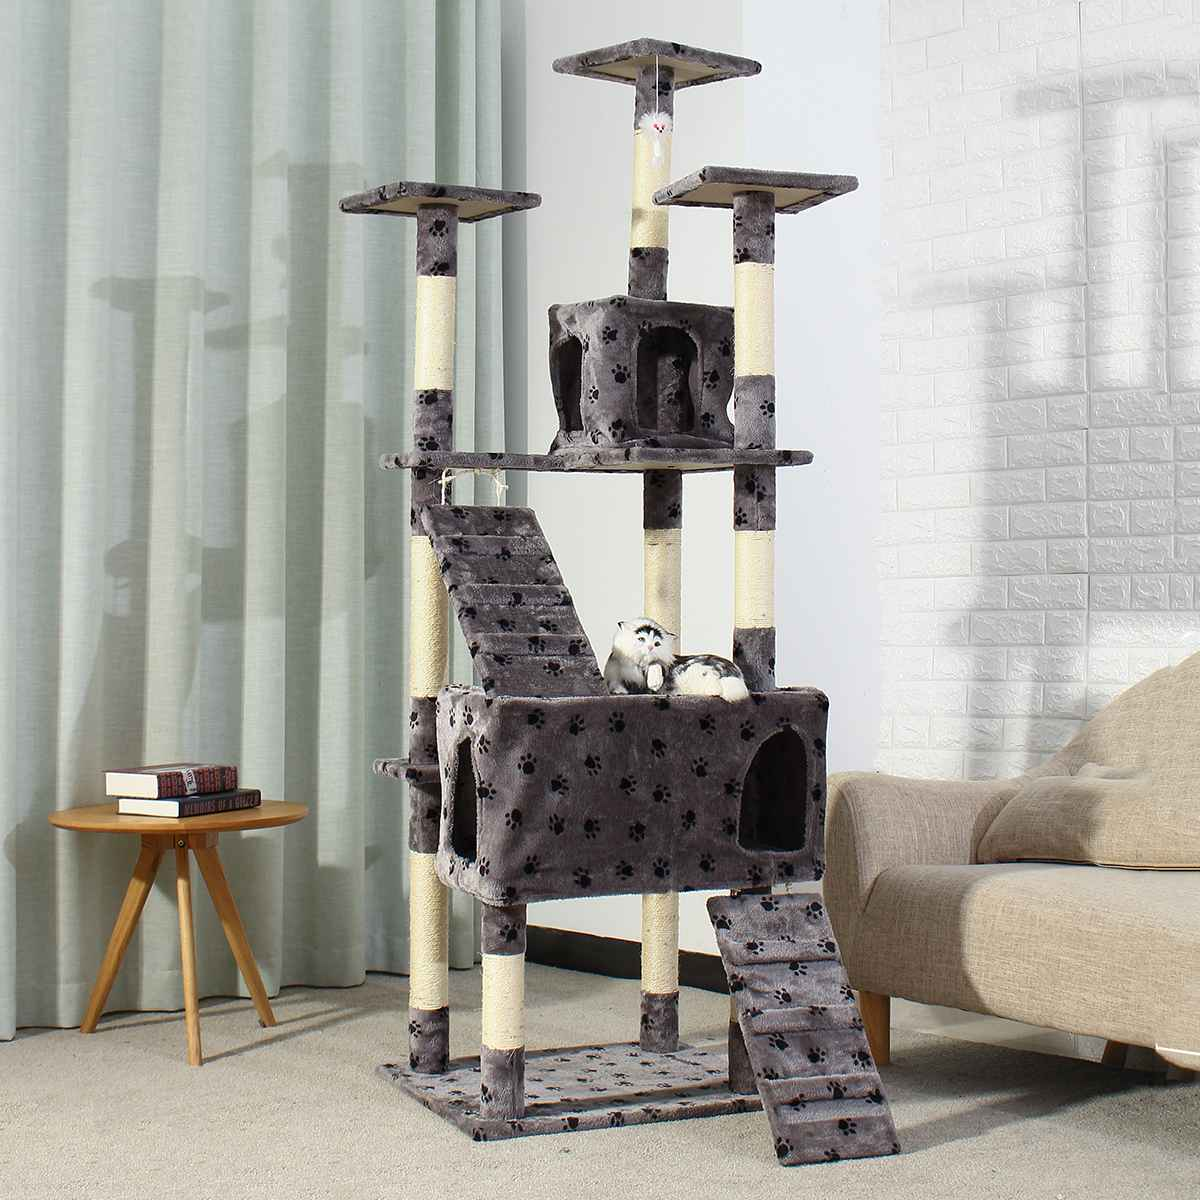 186CM <font><b>Large</b></font> Pet <font><b>Cat</b></font> Climbing <font><b>Tree</b></font> House <font><b>Cat</b></font> Toy <font><b>Tree</b></font> Scratcher Play House Condo Furniture Climbing Frame <font><b>Cat</b></font> Condos Scratching image